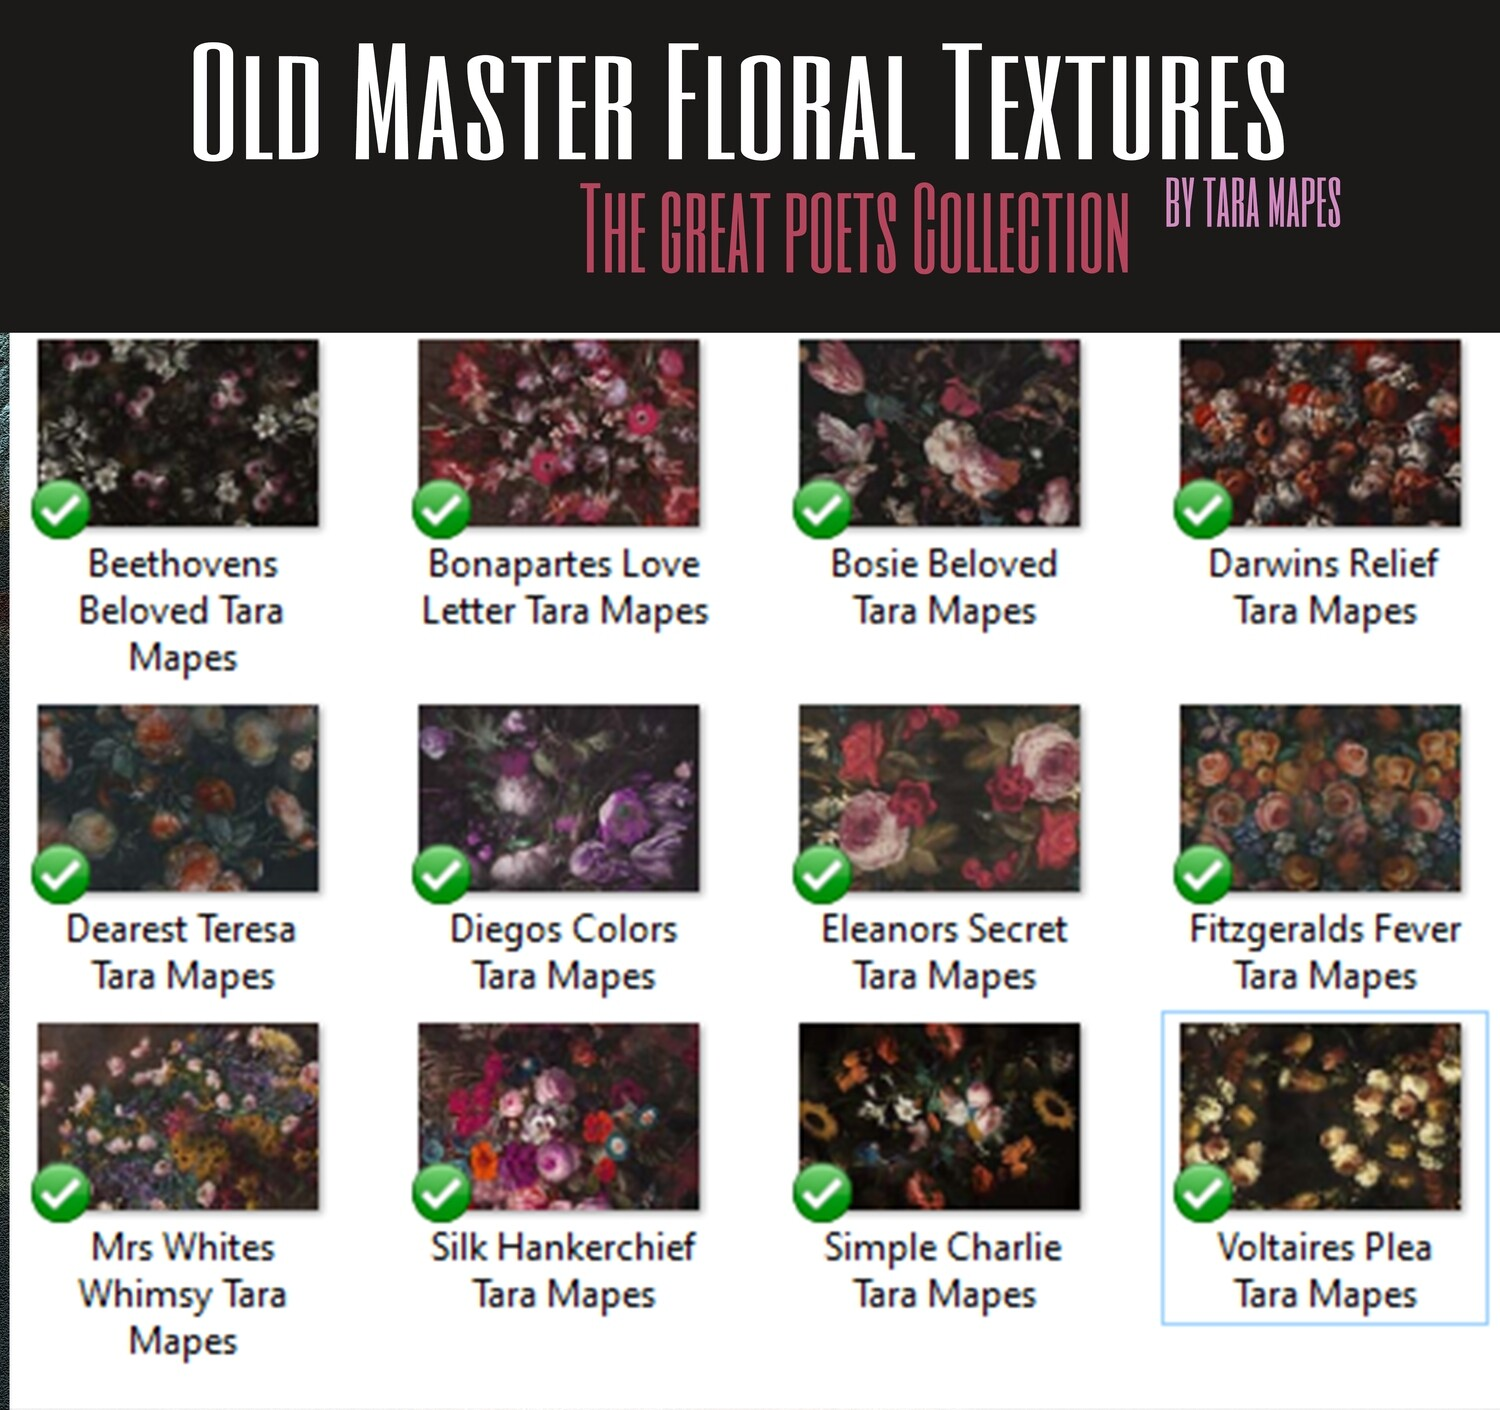 12 Old Masters Floral Textures -Floral Backdrops - Digital Backgrounds - THE GREAT POETS COLLECTION Photoshop Overlays by Tara Mapes